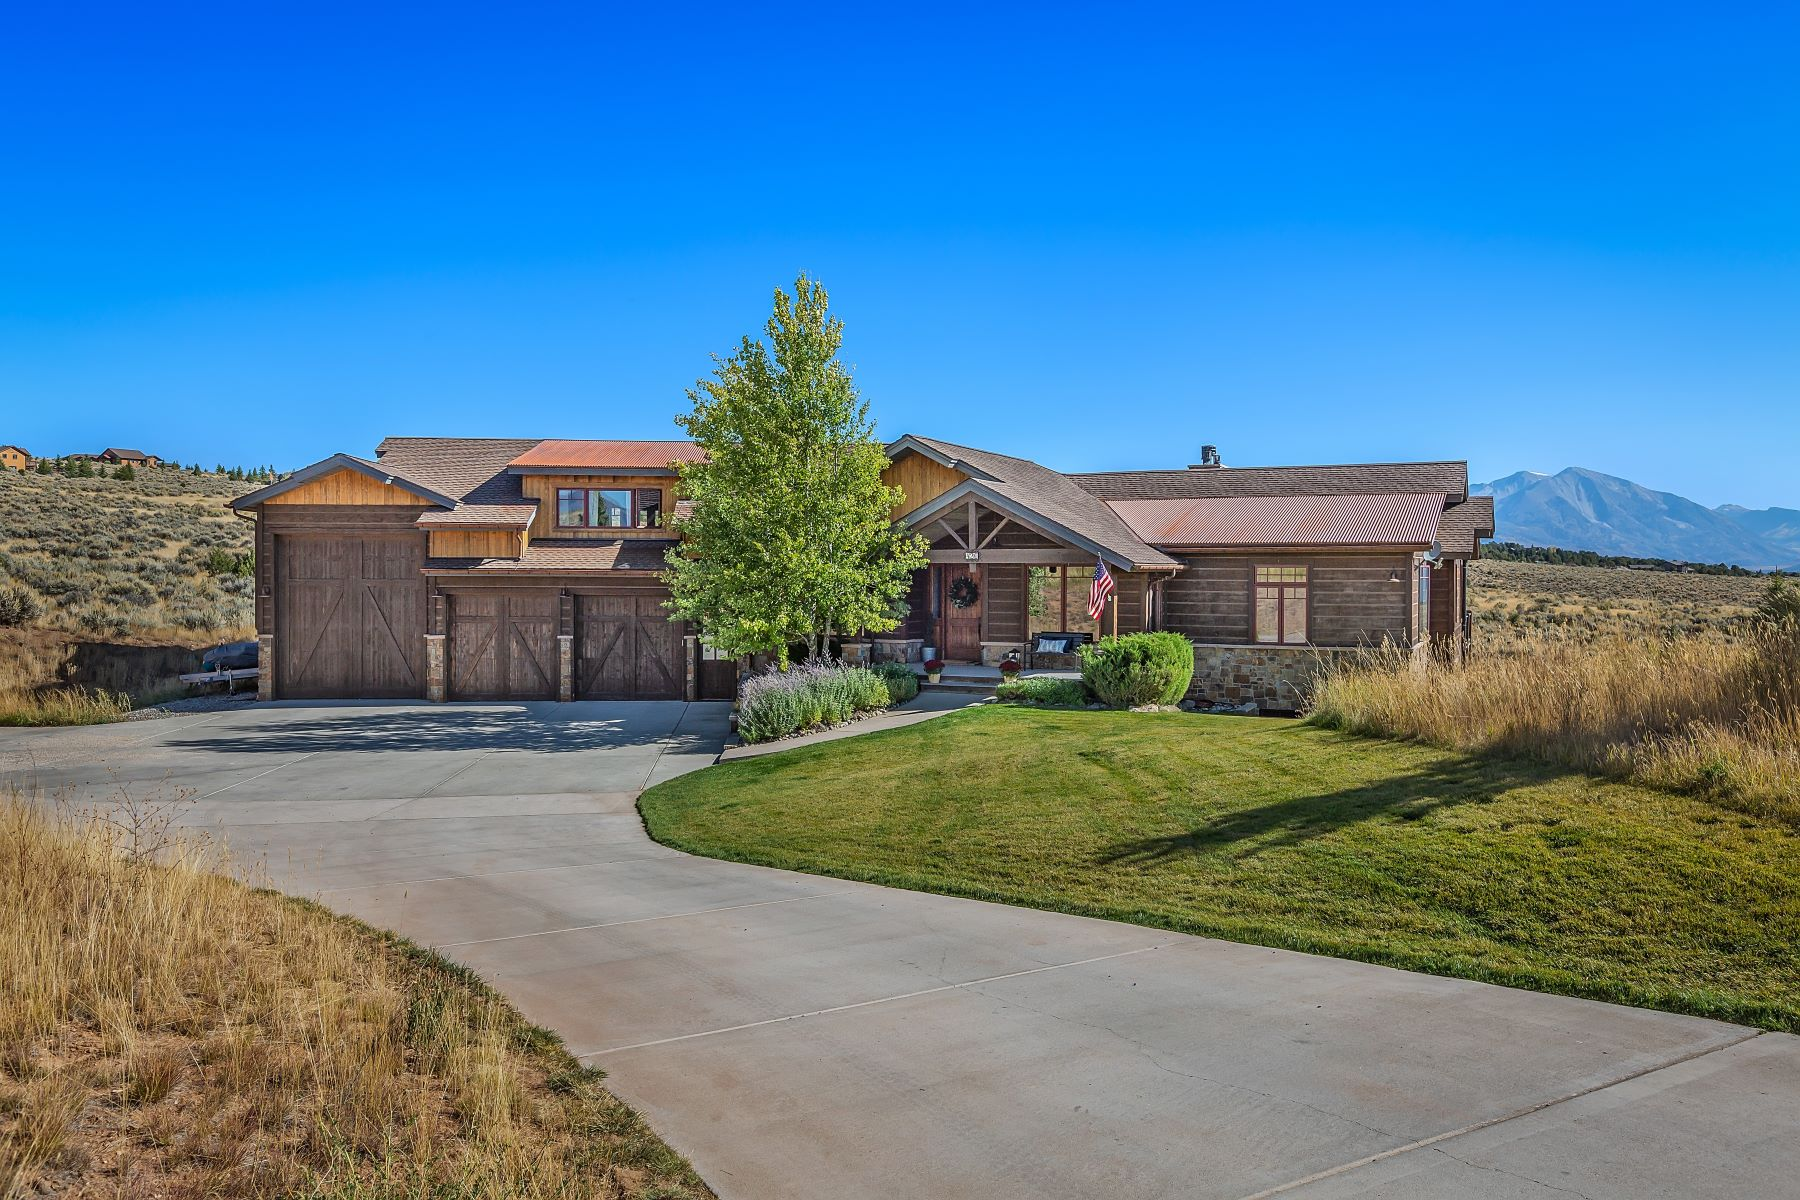 Single Family Homes for Active at Private Custom Home in Elk Springs 426 Aster Drive Glenwood Springs, Colorado 81601 United States